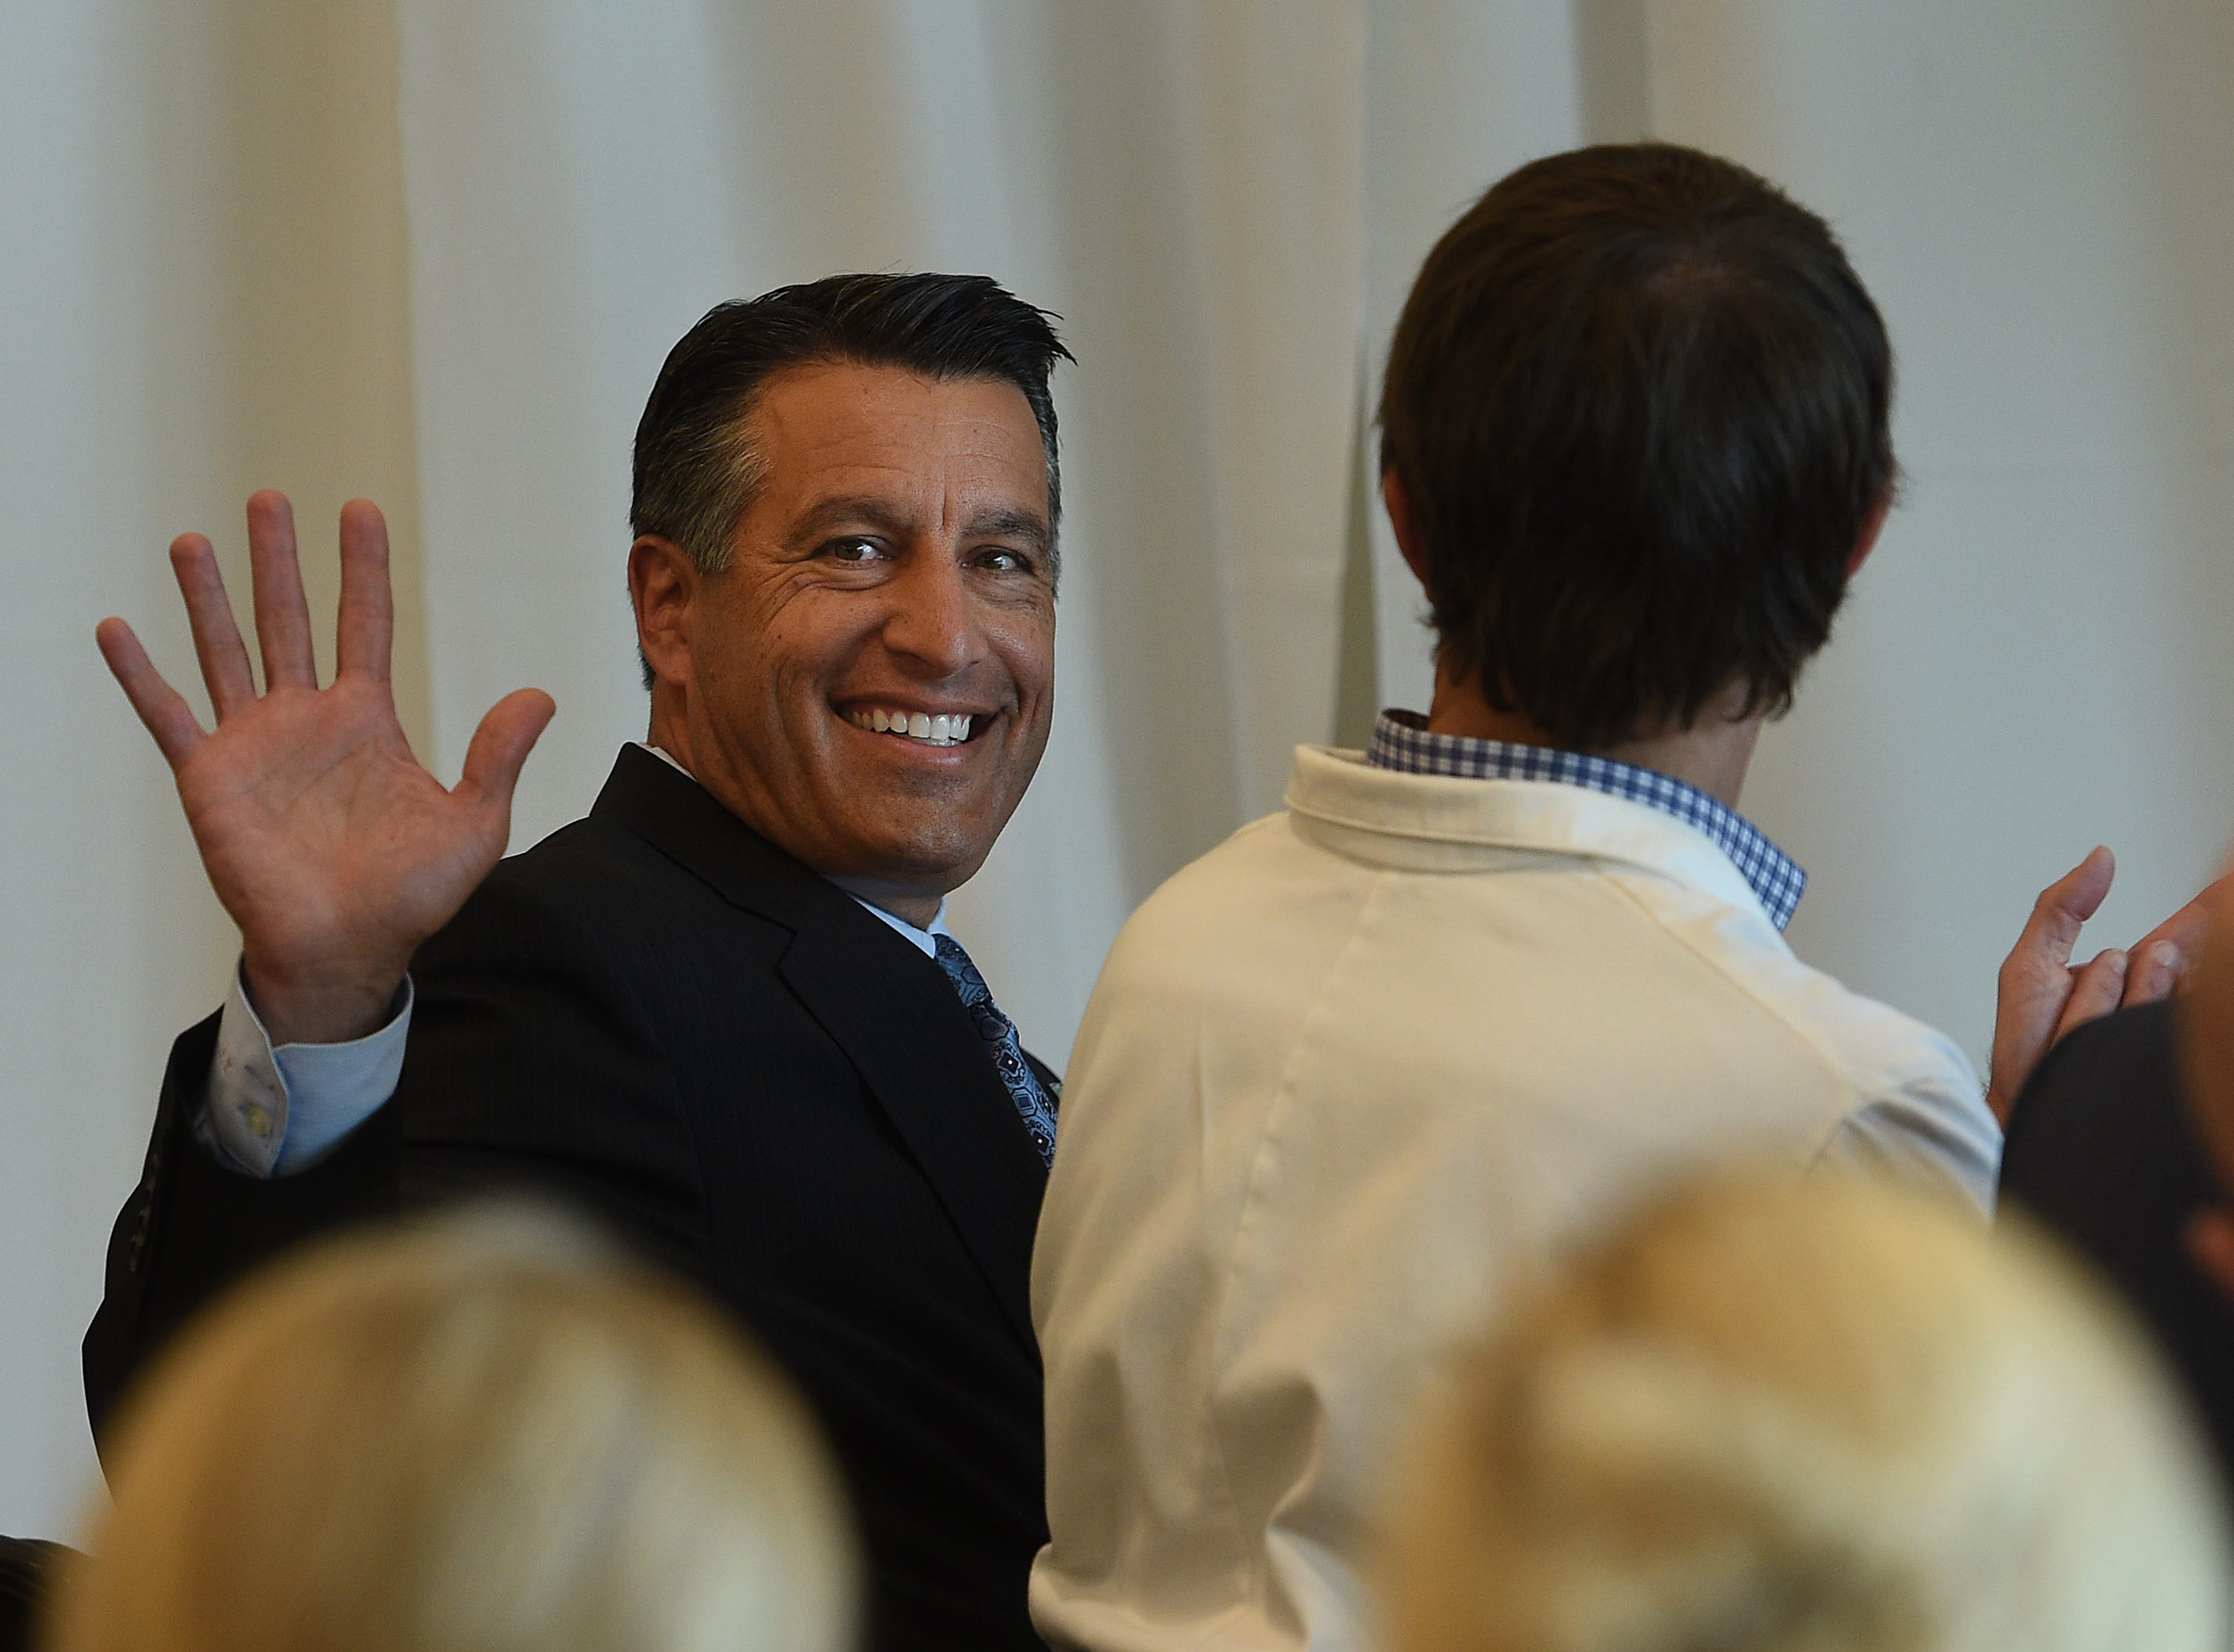 Nevada Governor Brian Sandoval waves to the crowd during the EDAWN press conference announcing the arrival of Grand Rounds, a medical technology company, to the Reno Tahoe Tech Center in Reno on May 13, 2015.